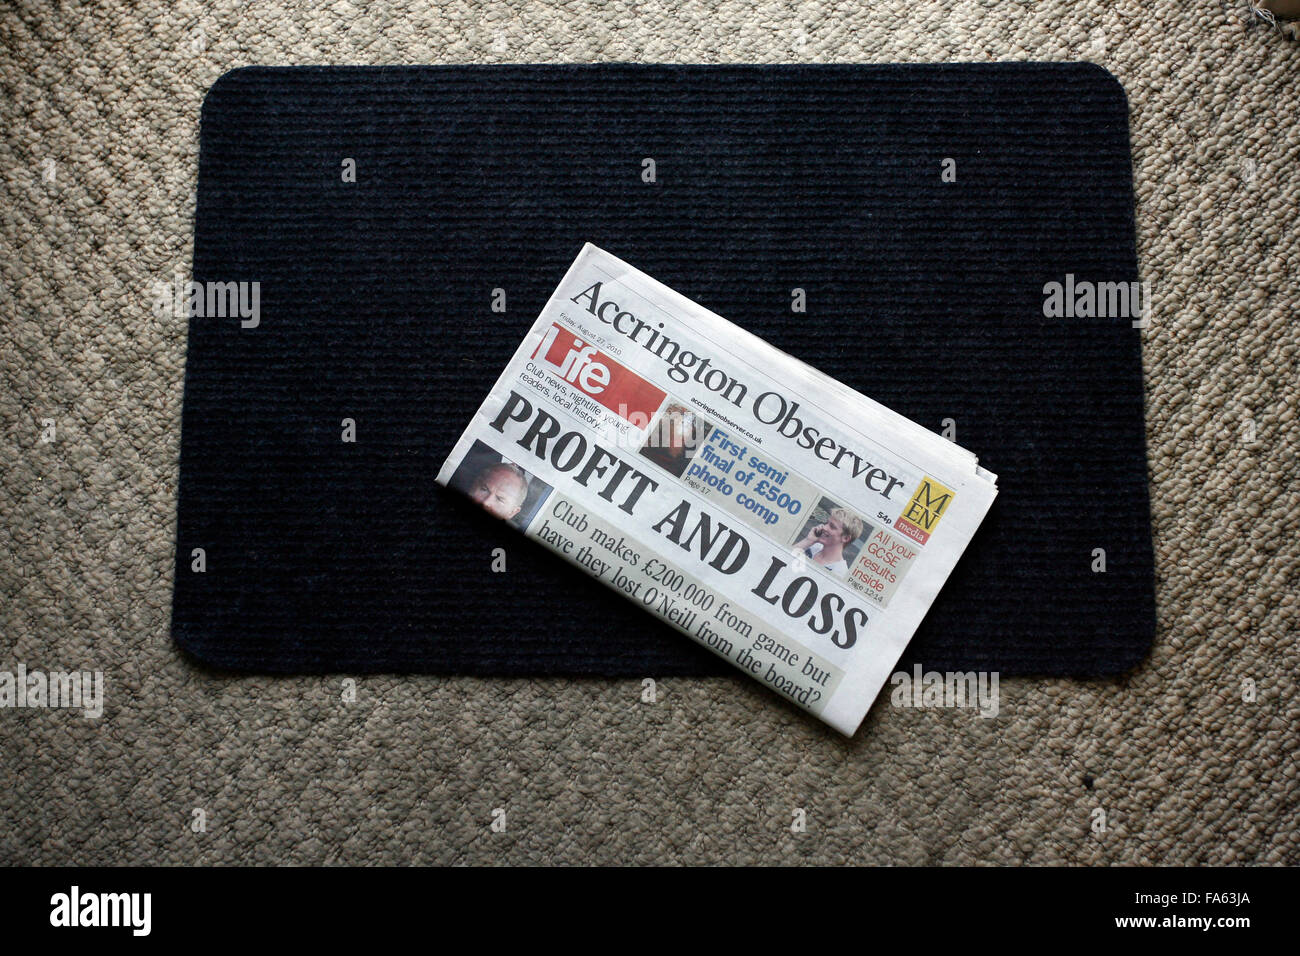 Accrington Observer newspaper on a doormat - Stock Image